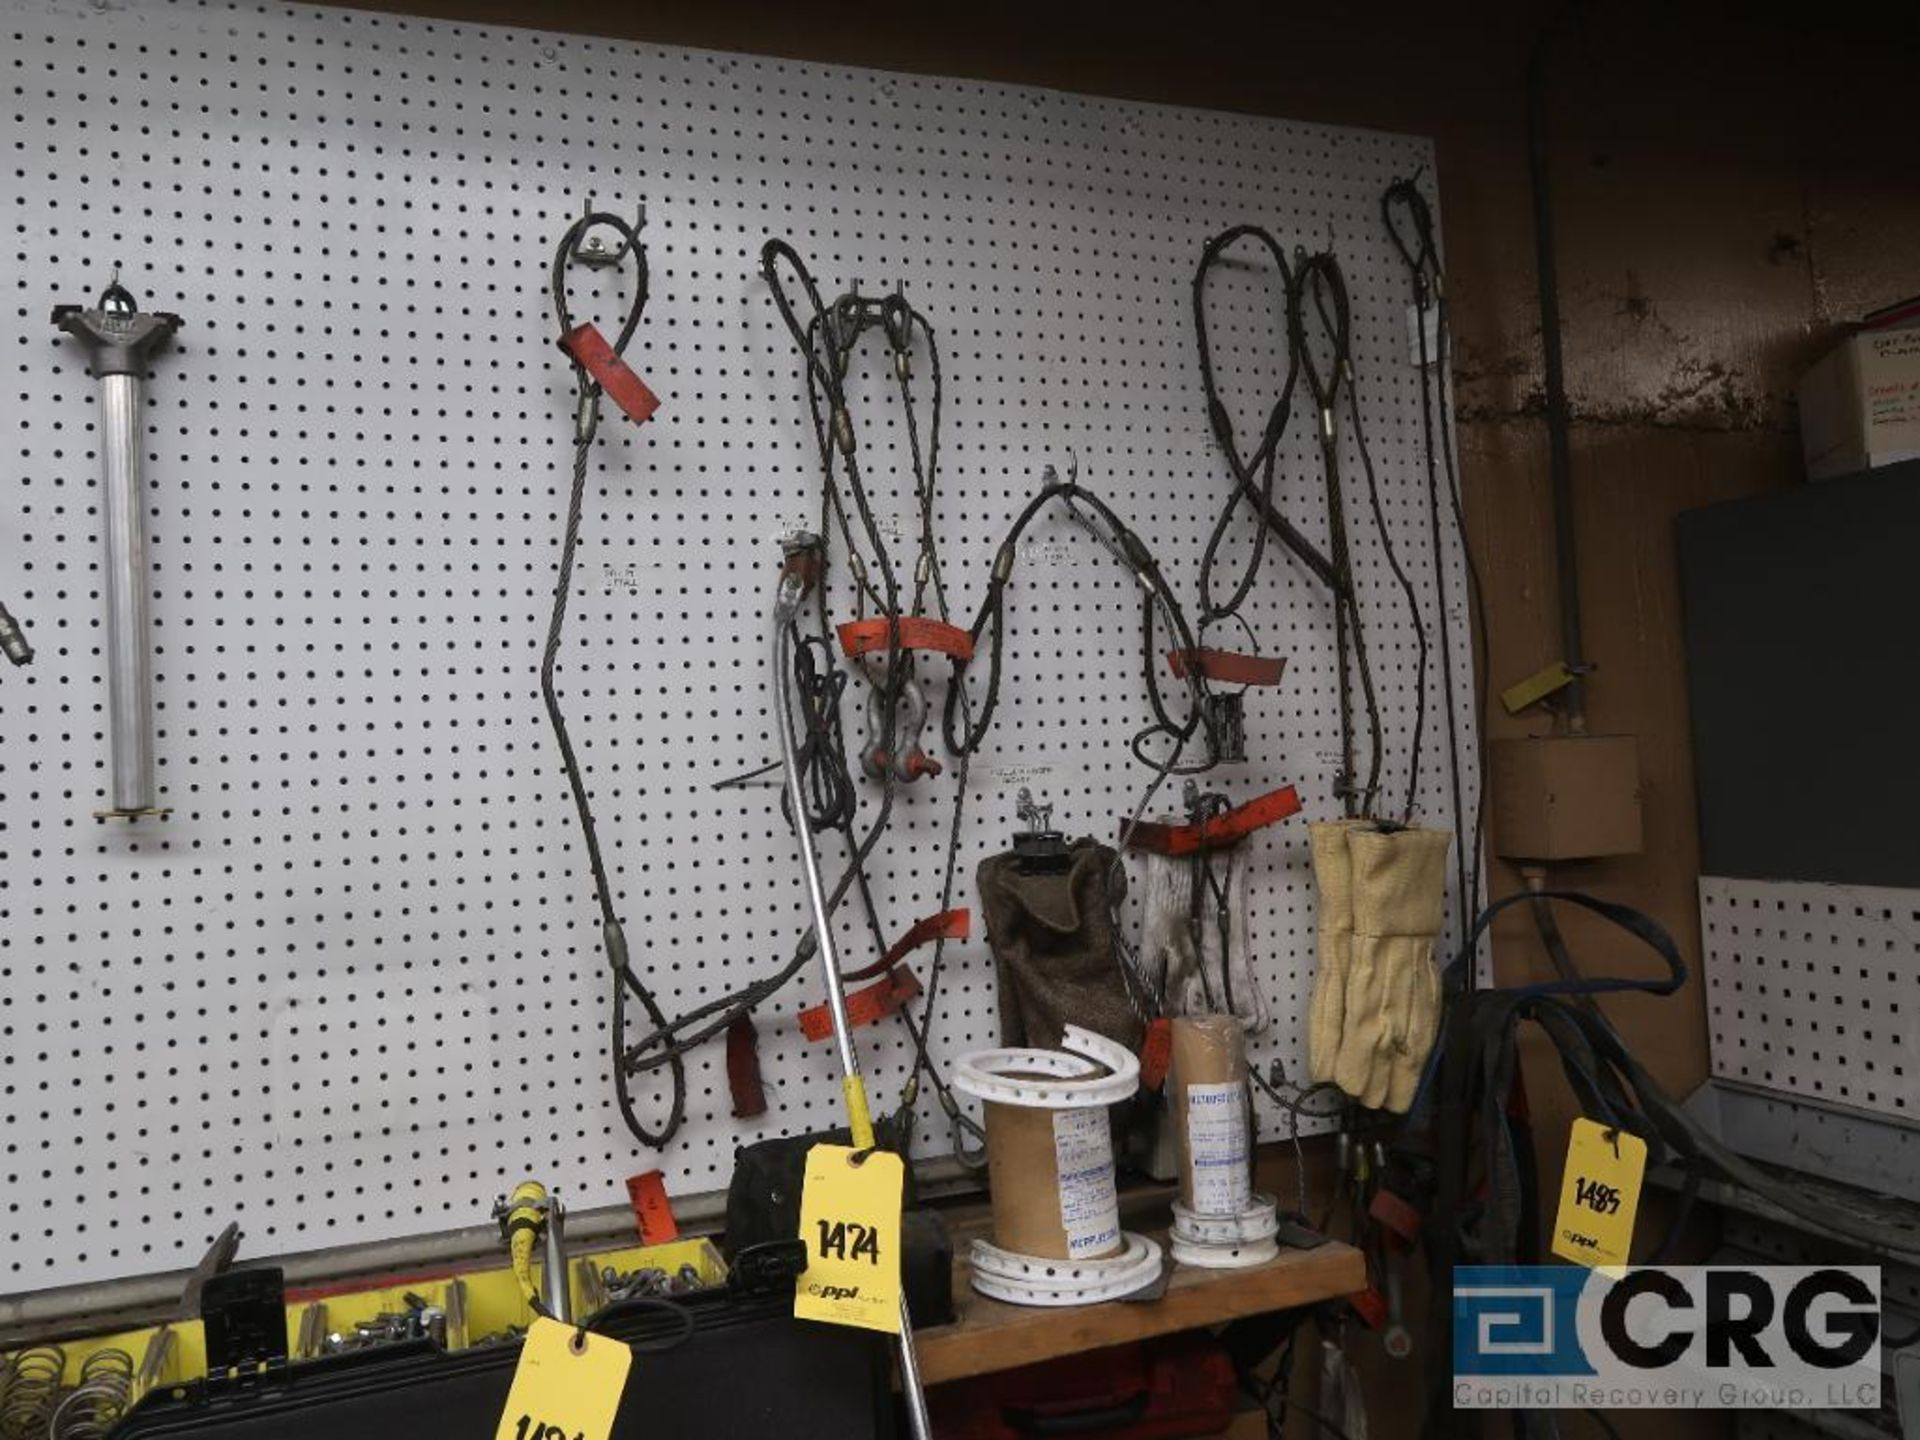 Lot of cable and nylon slings (Basement Stores) - Image 3 of 3